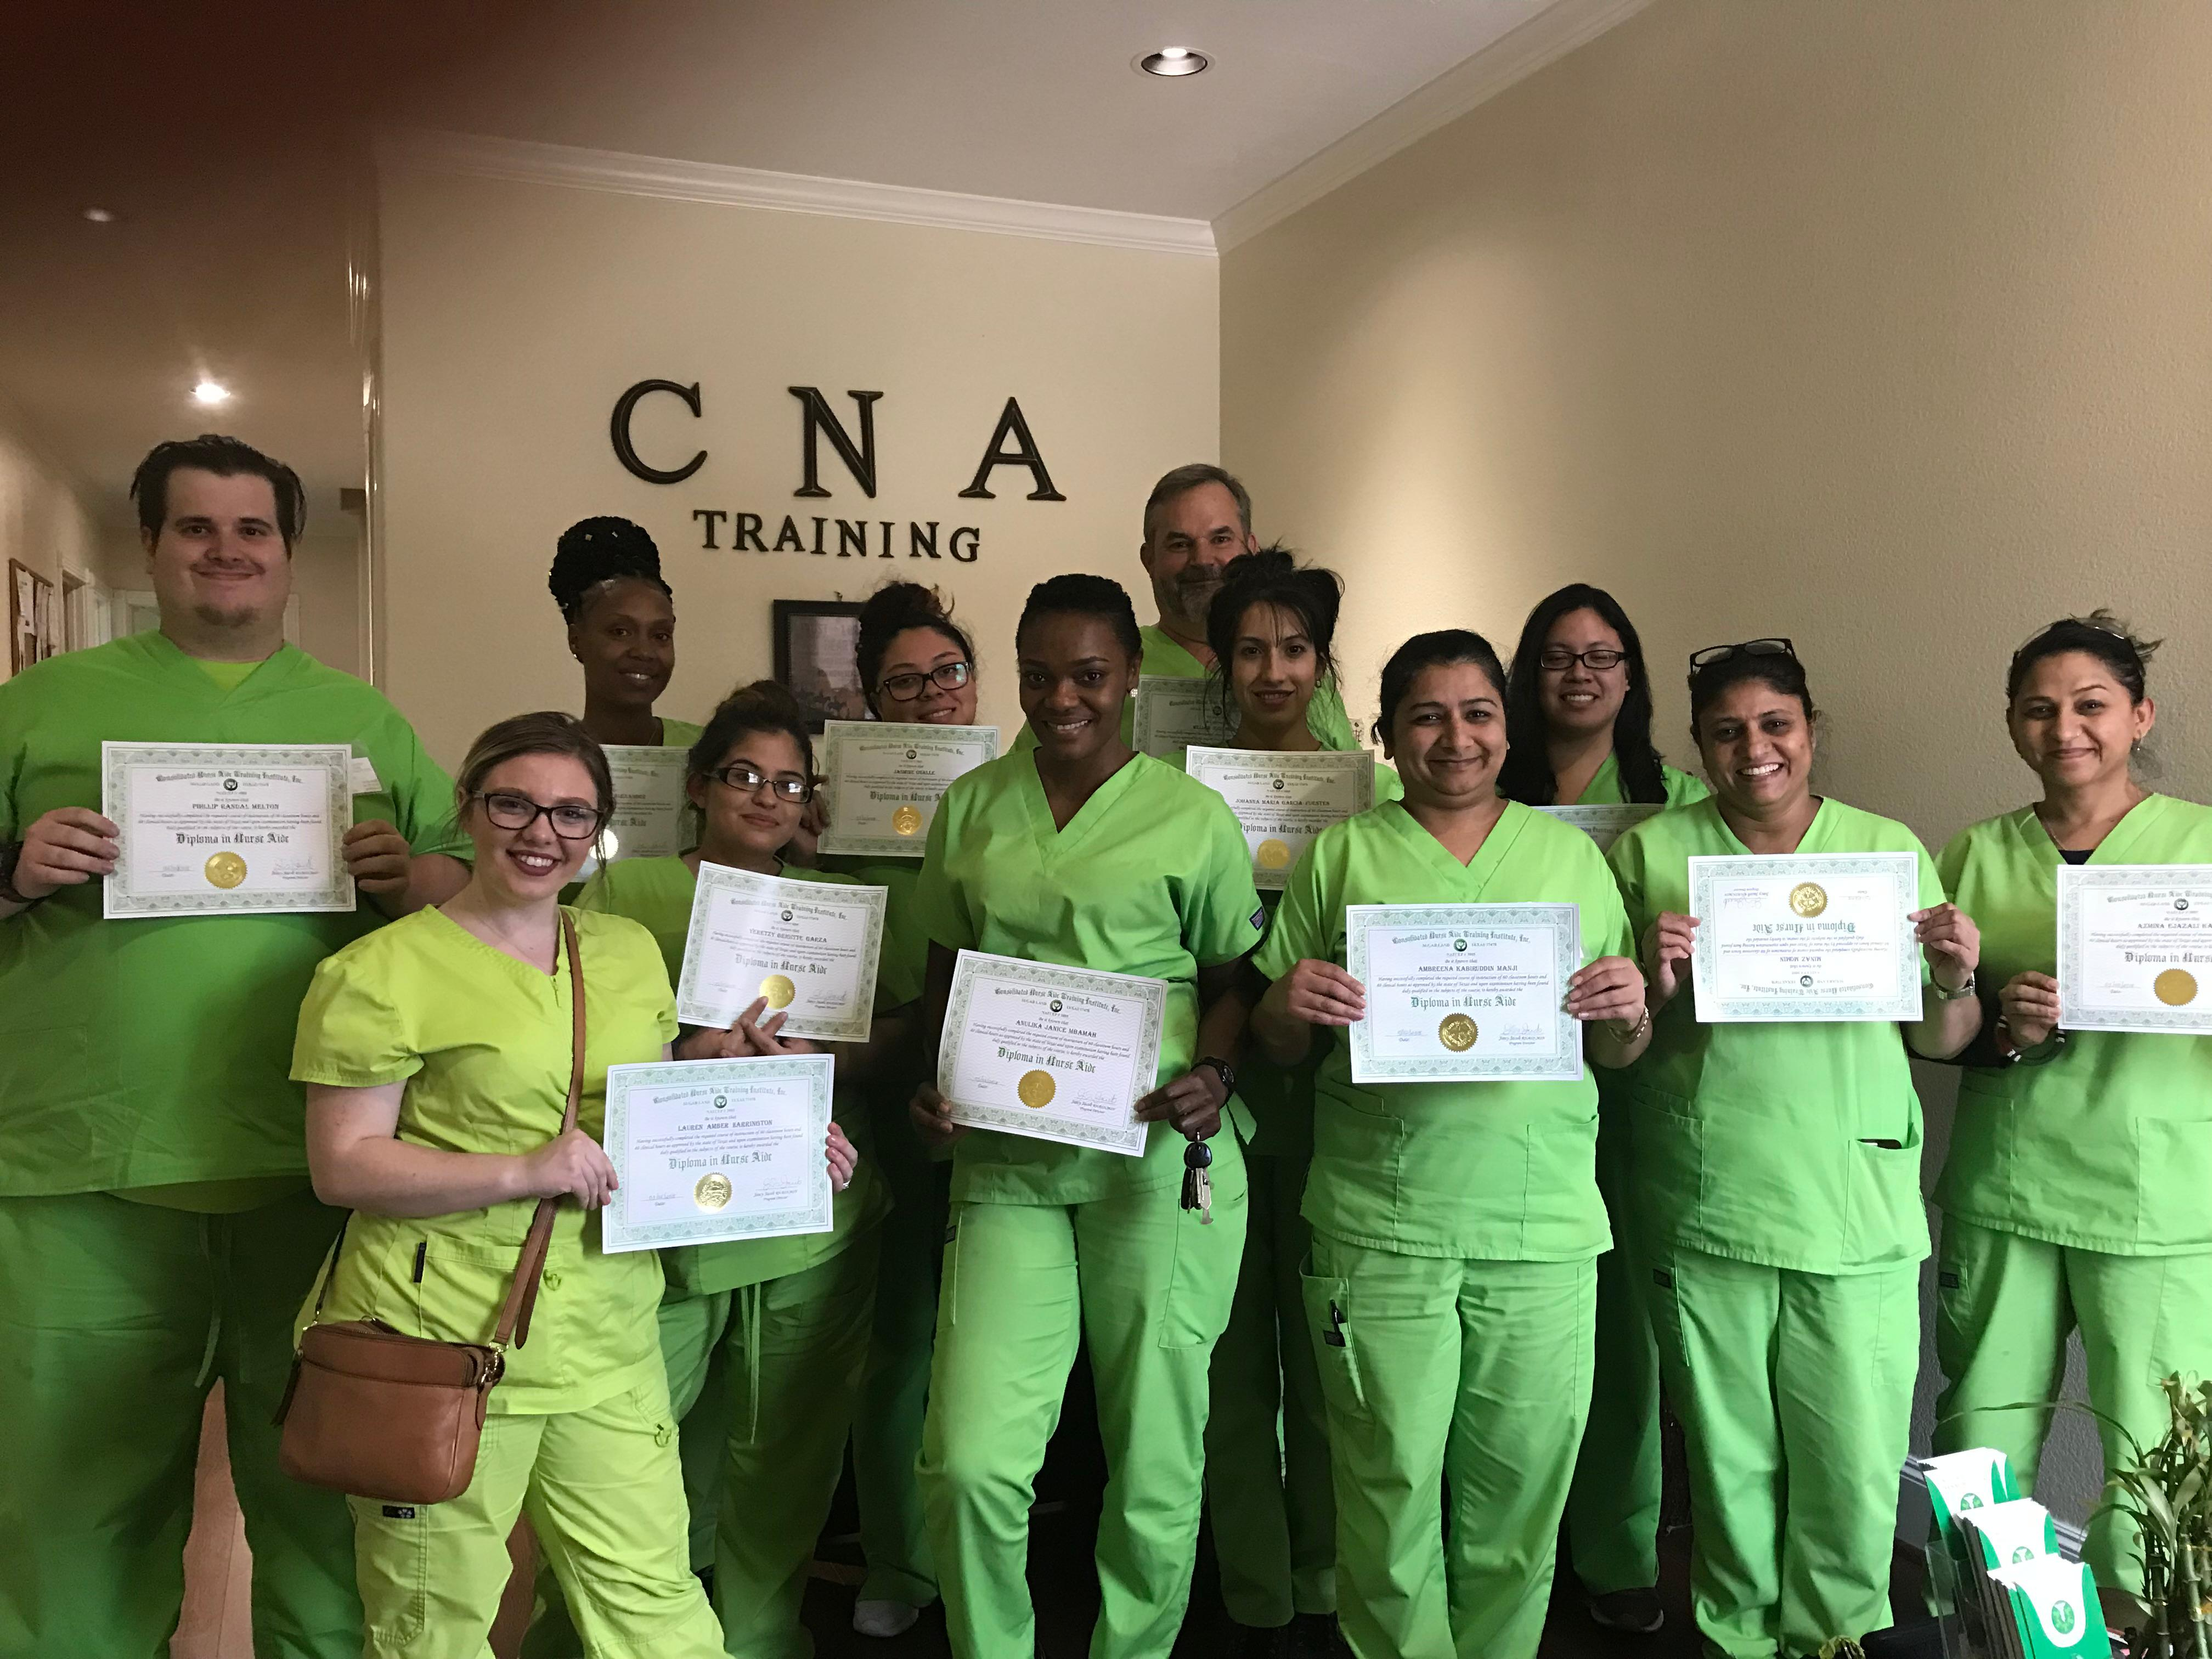 nev cna training classes - HD 4032×3024